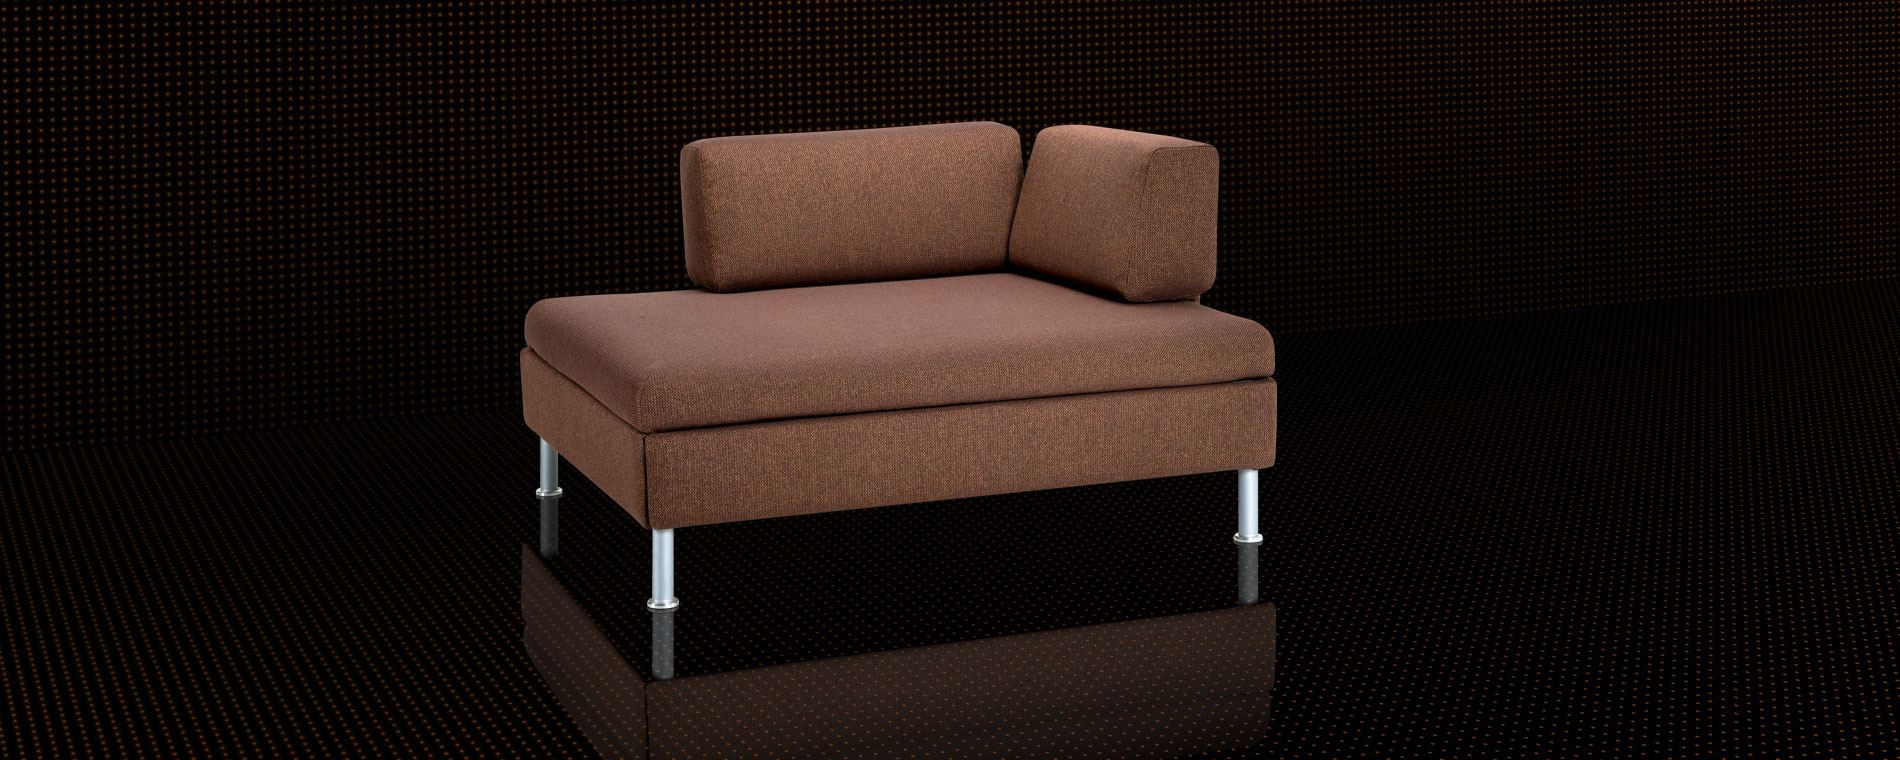 Kompaktes Schlafsofa BED for LIVING Duetto 1